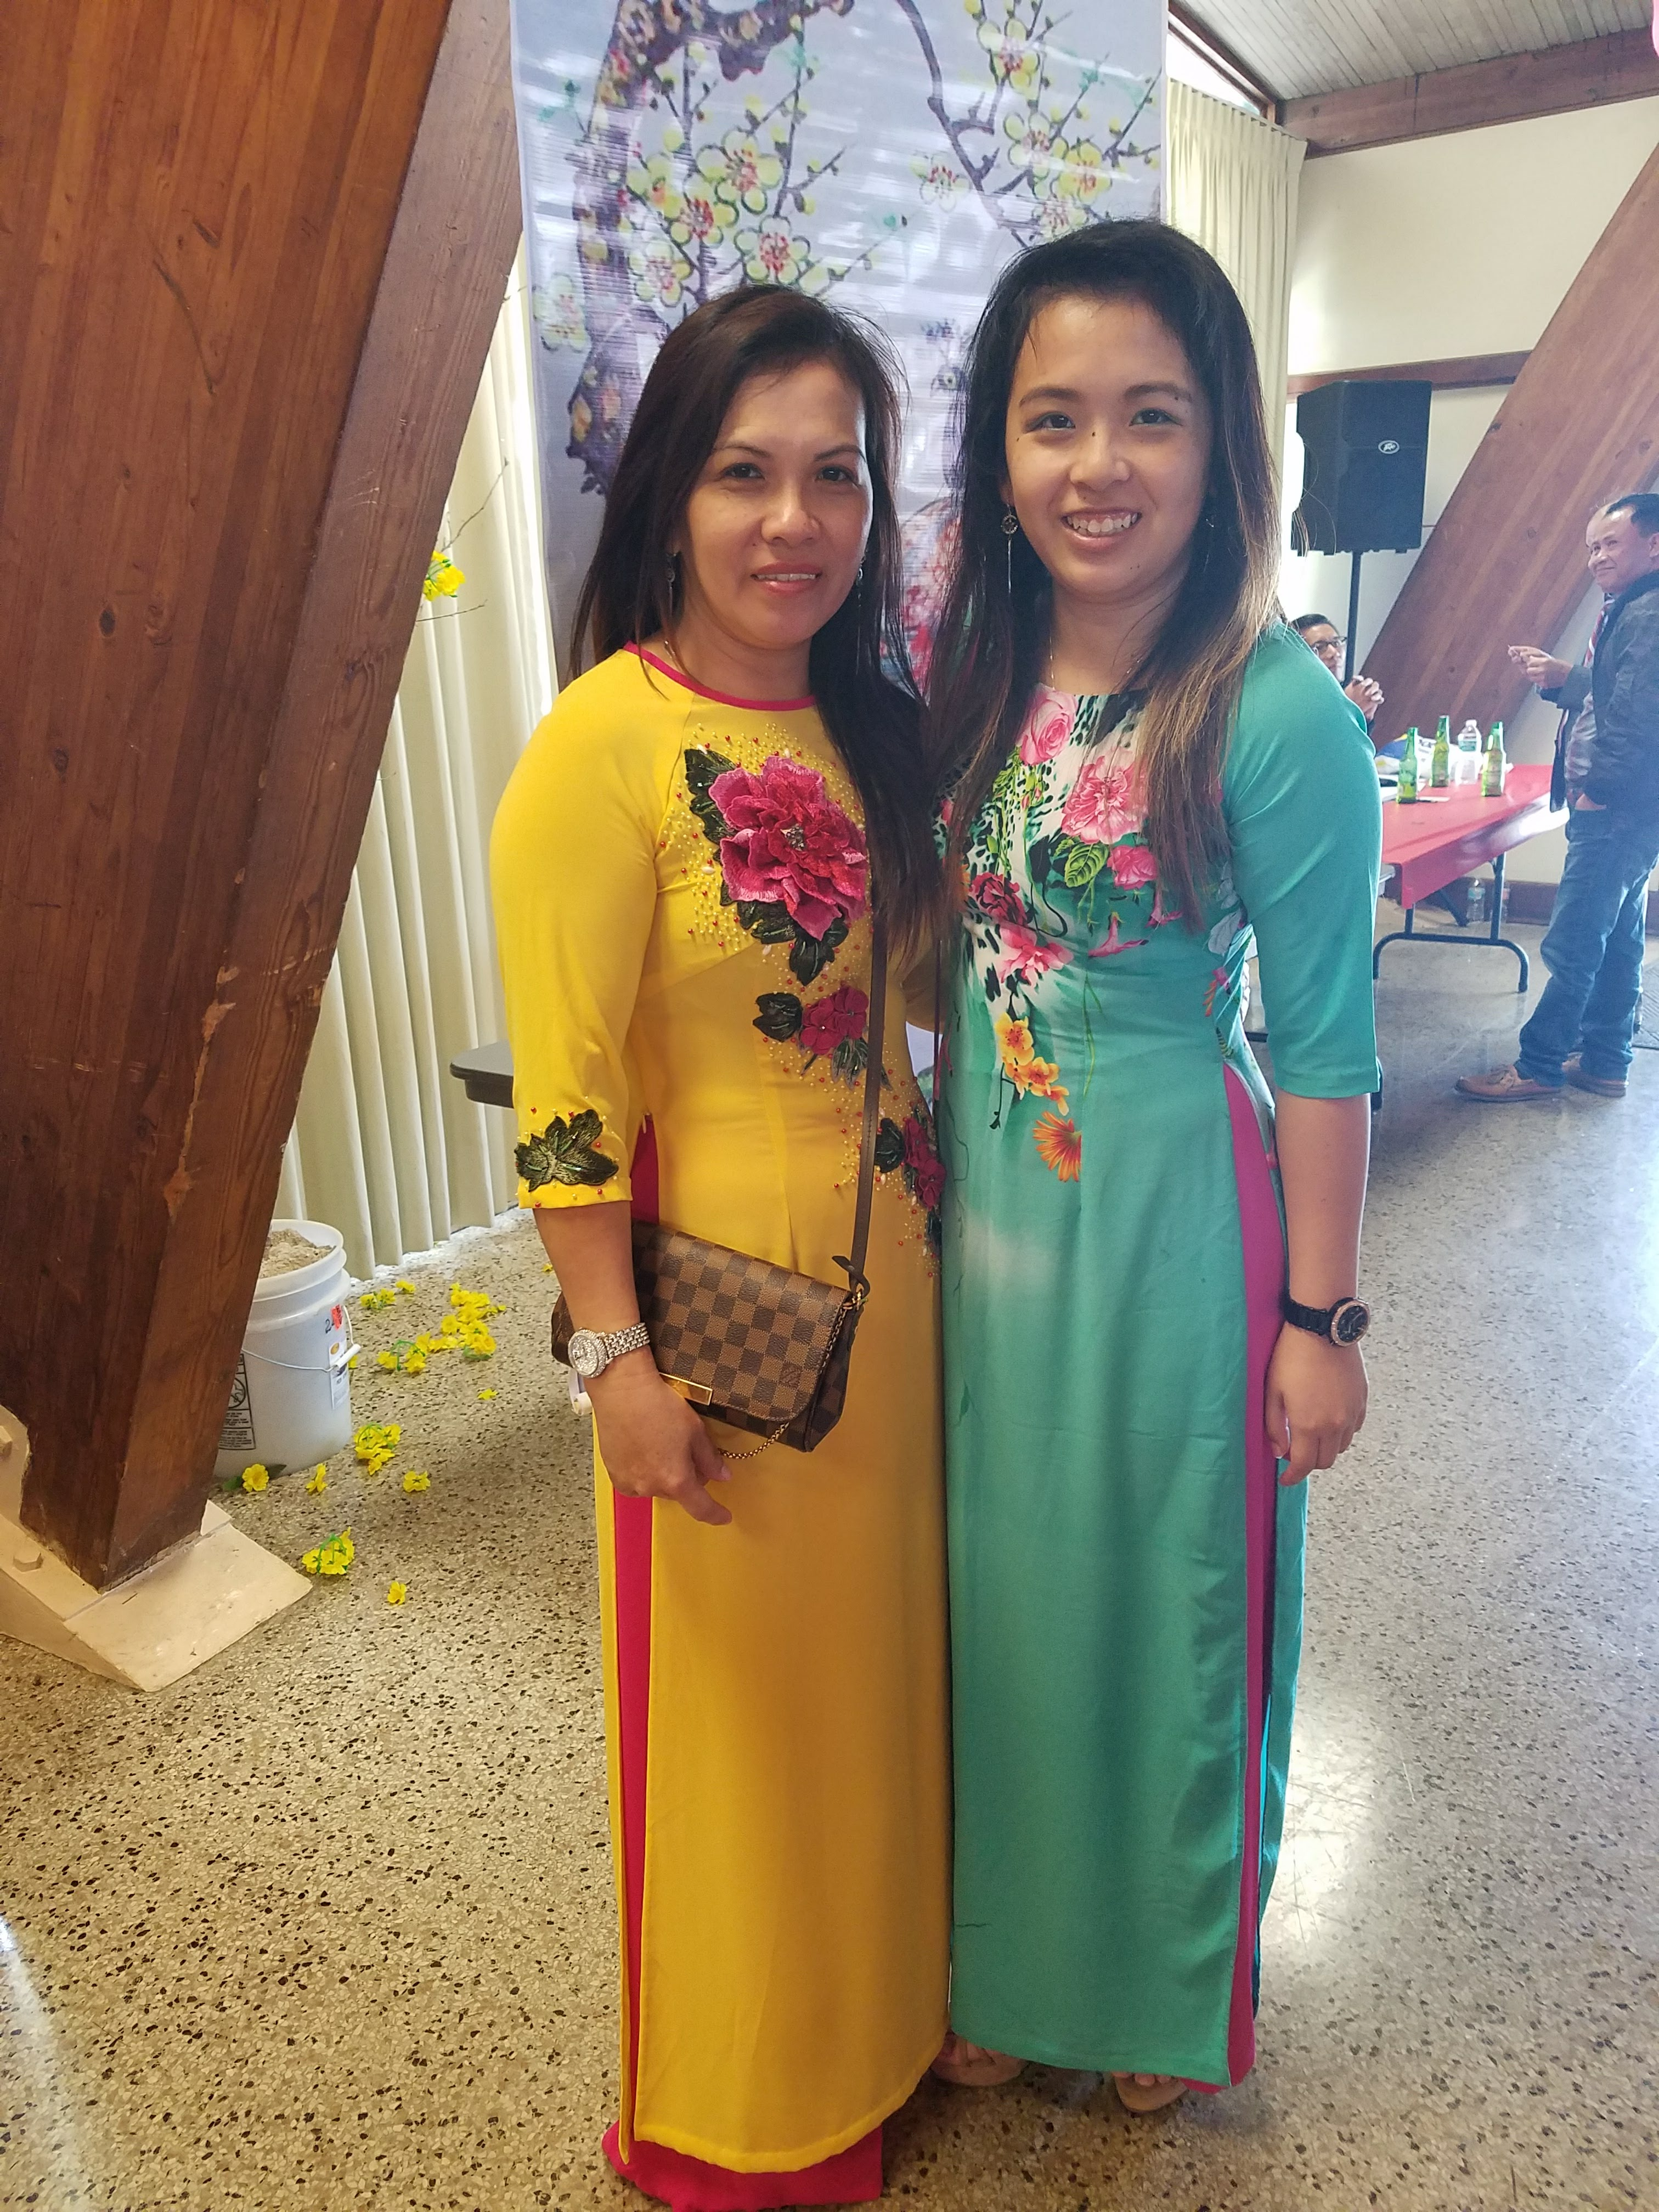 It's me and my mom in ao dais, the traditional Vietnamese dress for women.